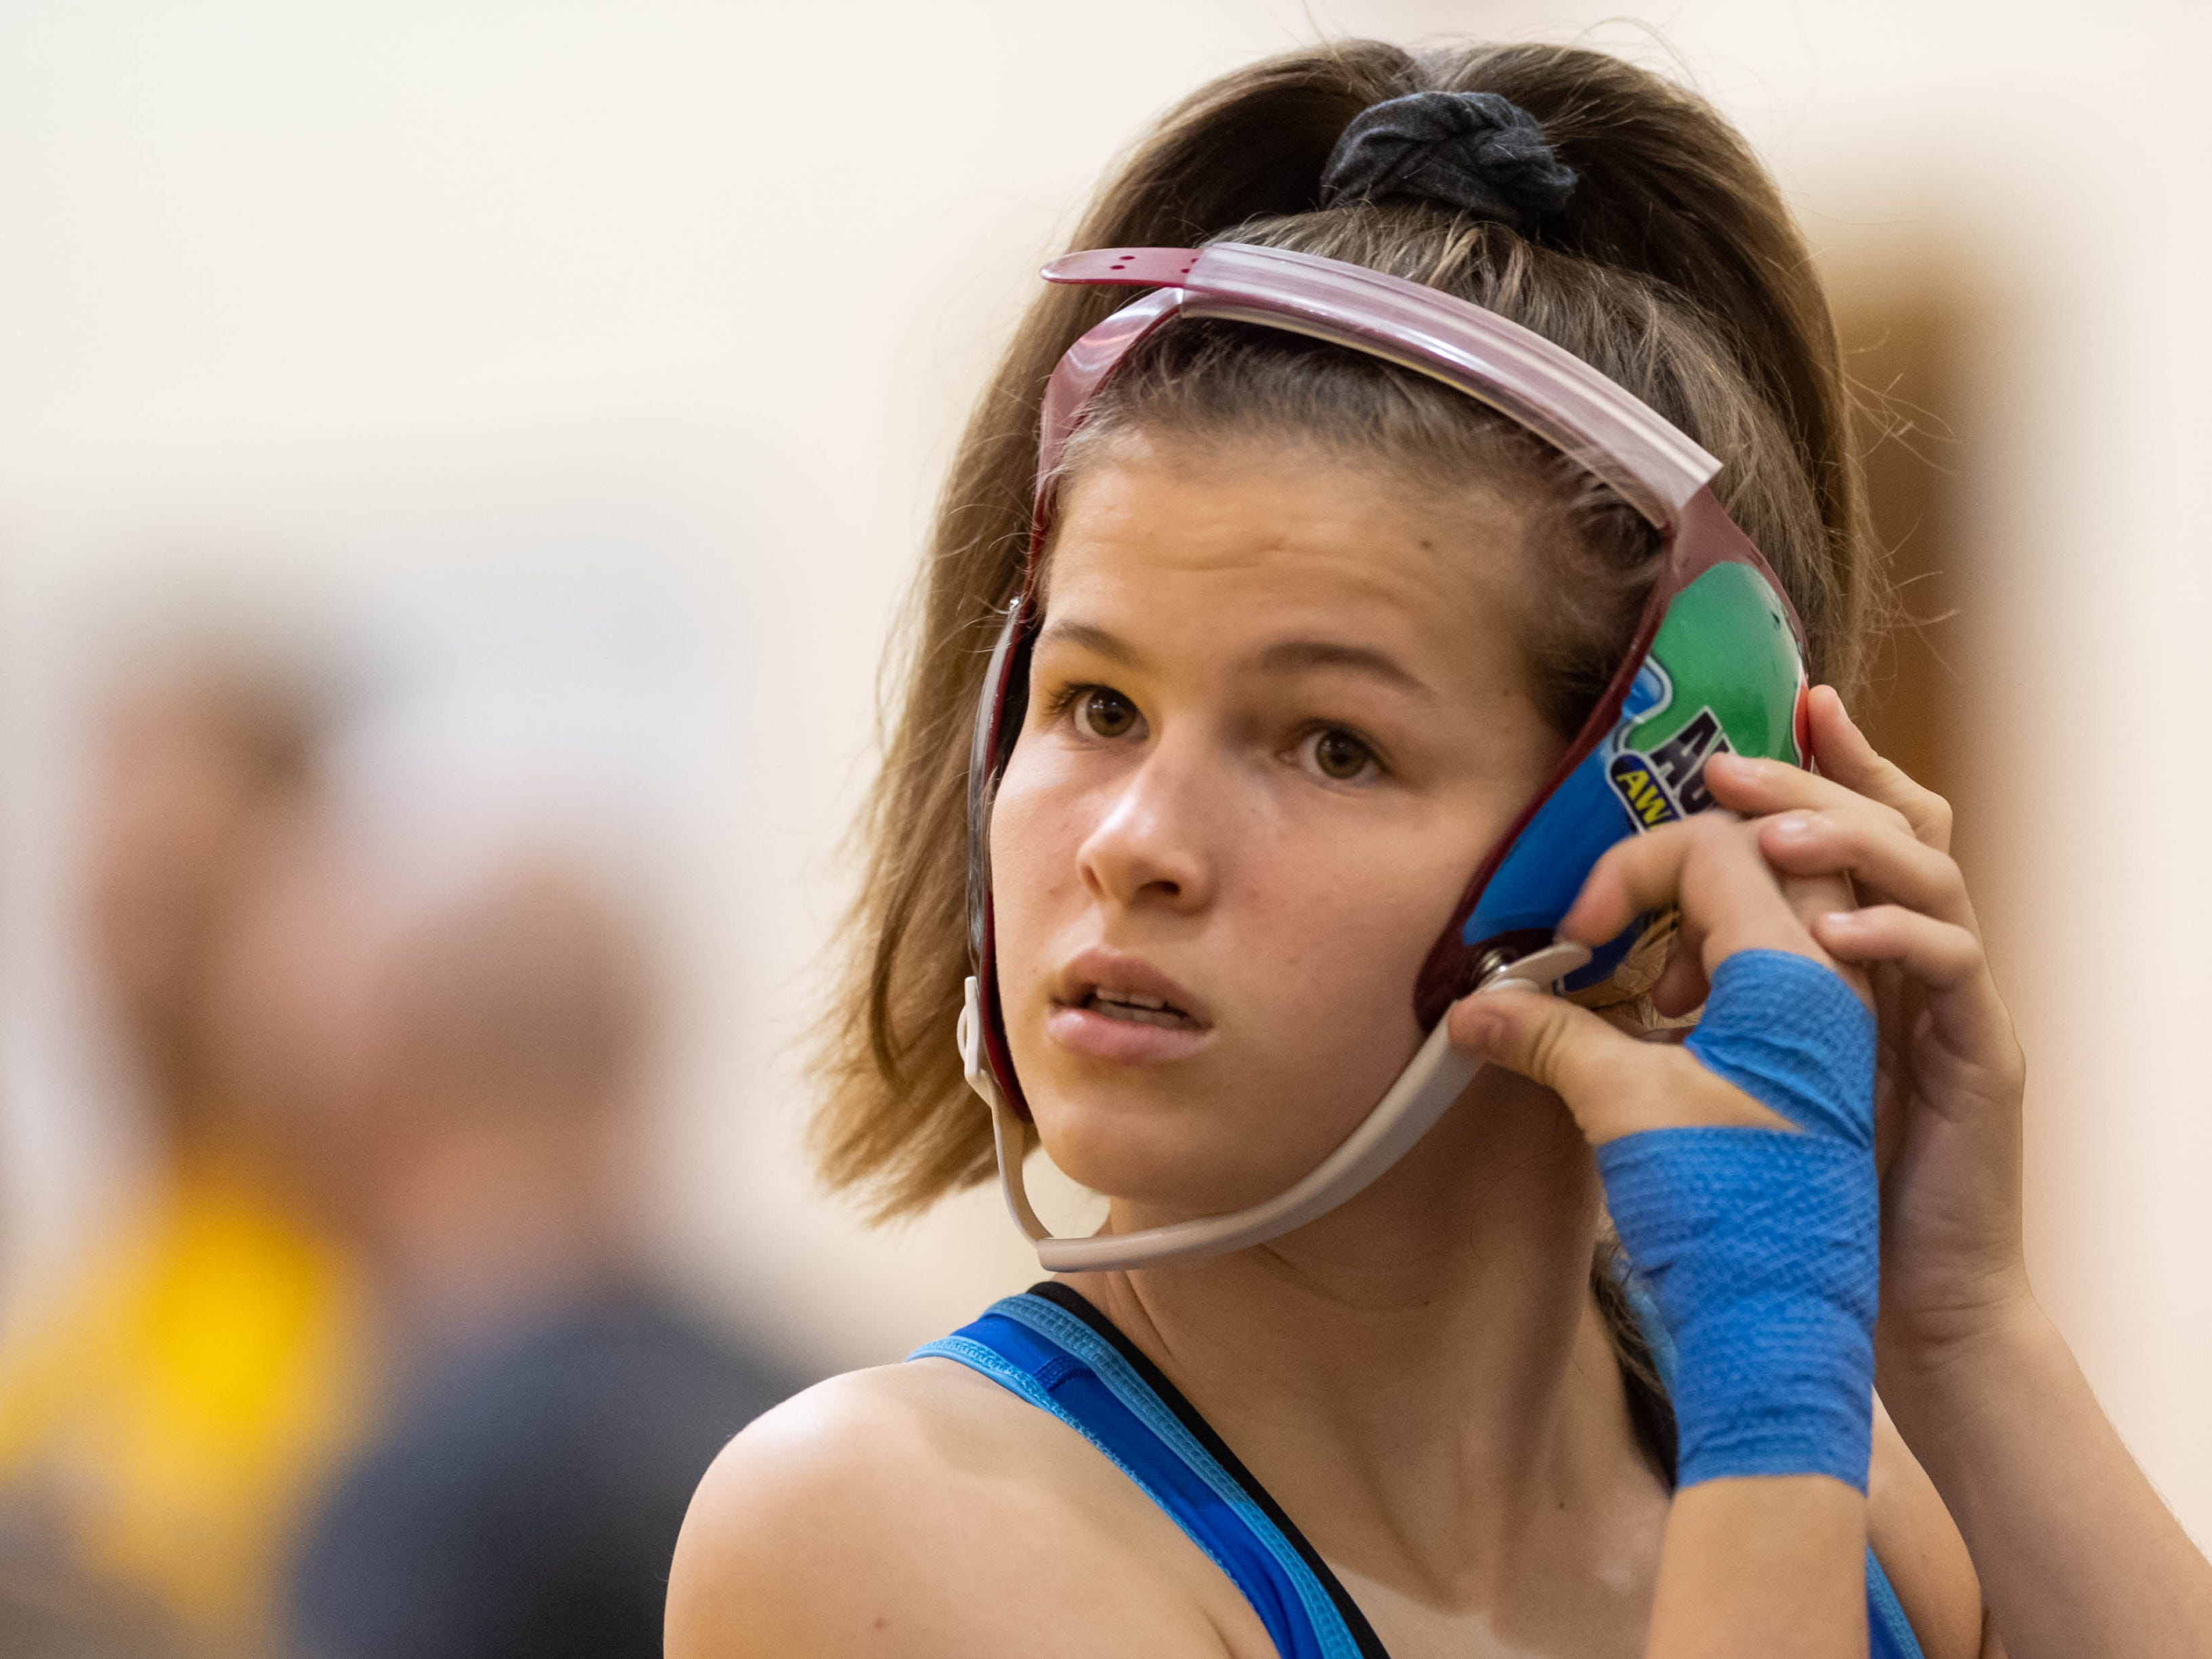 Kaylie prepares to compete in an exhibition match against senior Ciera Broukal, not pictured, following the Indiana State Wrestling Association Women's Freestyle State tournament at Avon High School in Avon, Ind., Sunday morning, May 5, 2019. After automatically winning her weight class, Kaylie's mother Rachel arranged for her to wrestle Broukal to get more practice on the mat.